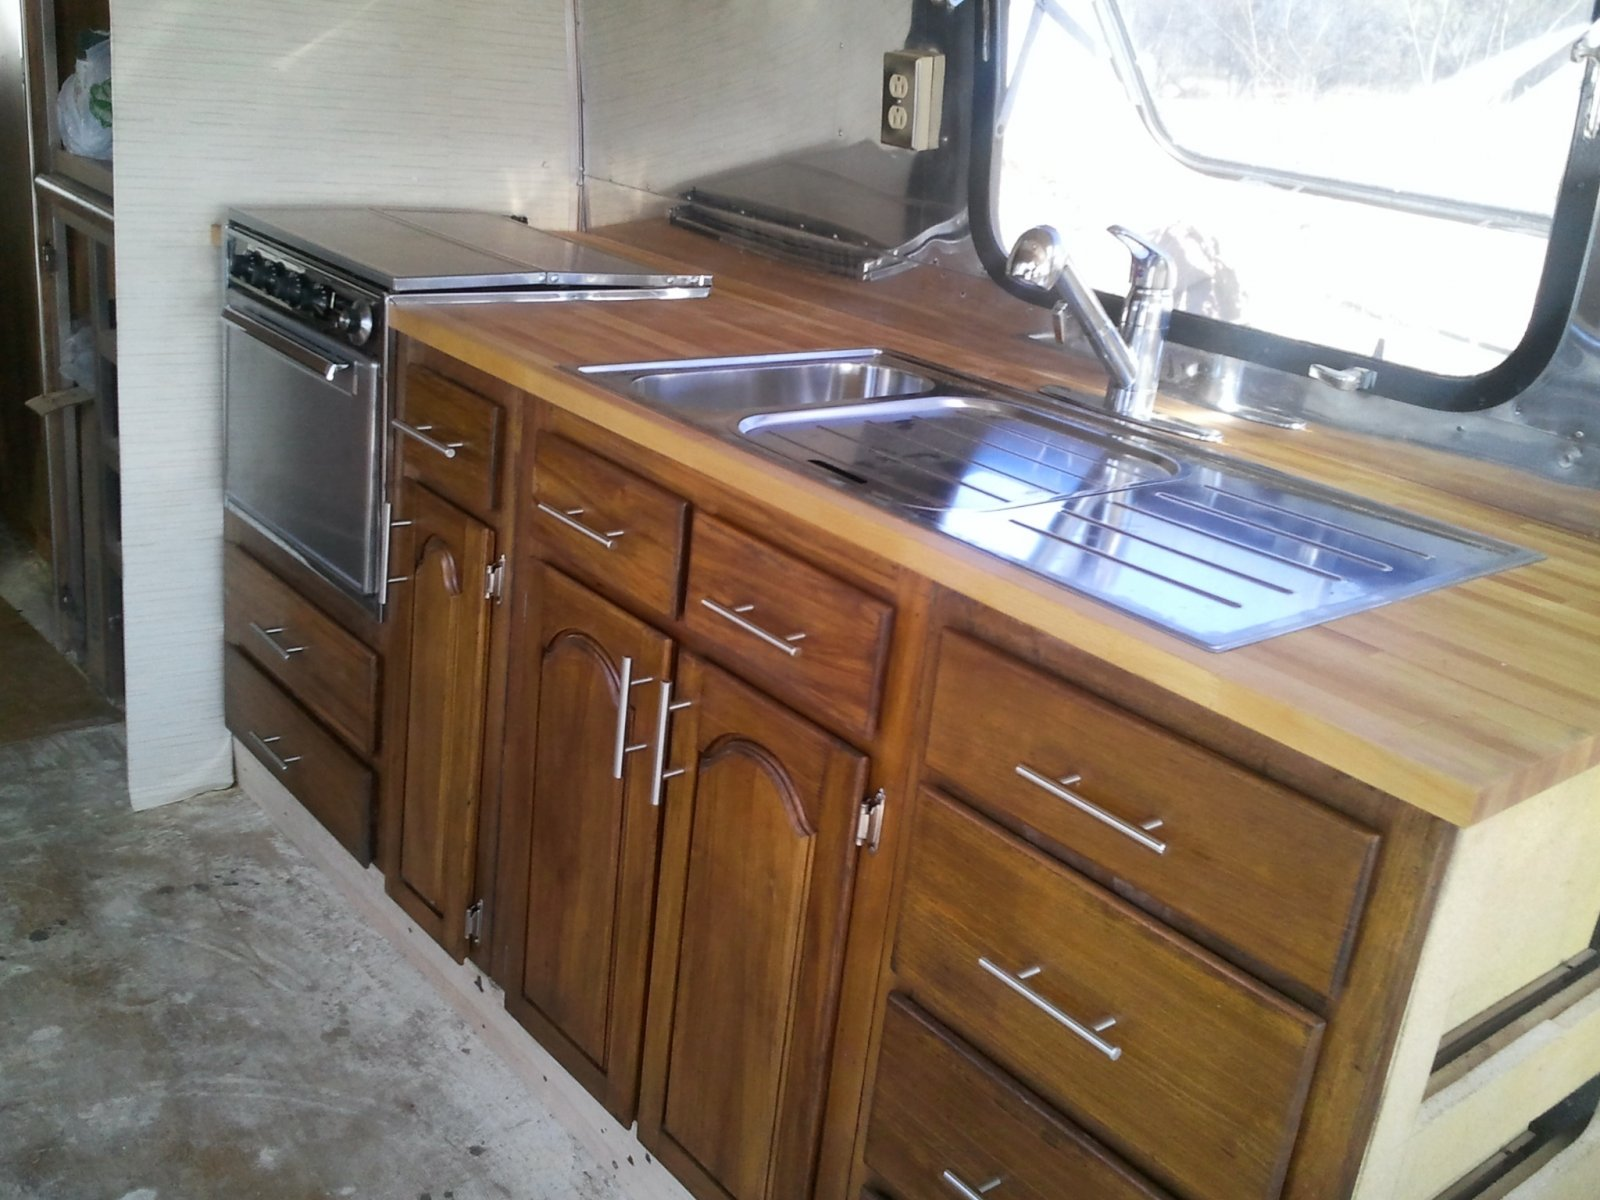 Click image for larger version  Name:83kitchen.jpg Views:208 Size:250.0 KB ID:128532